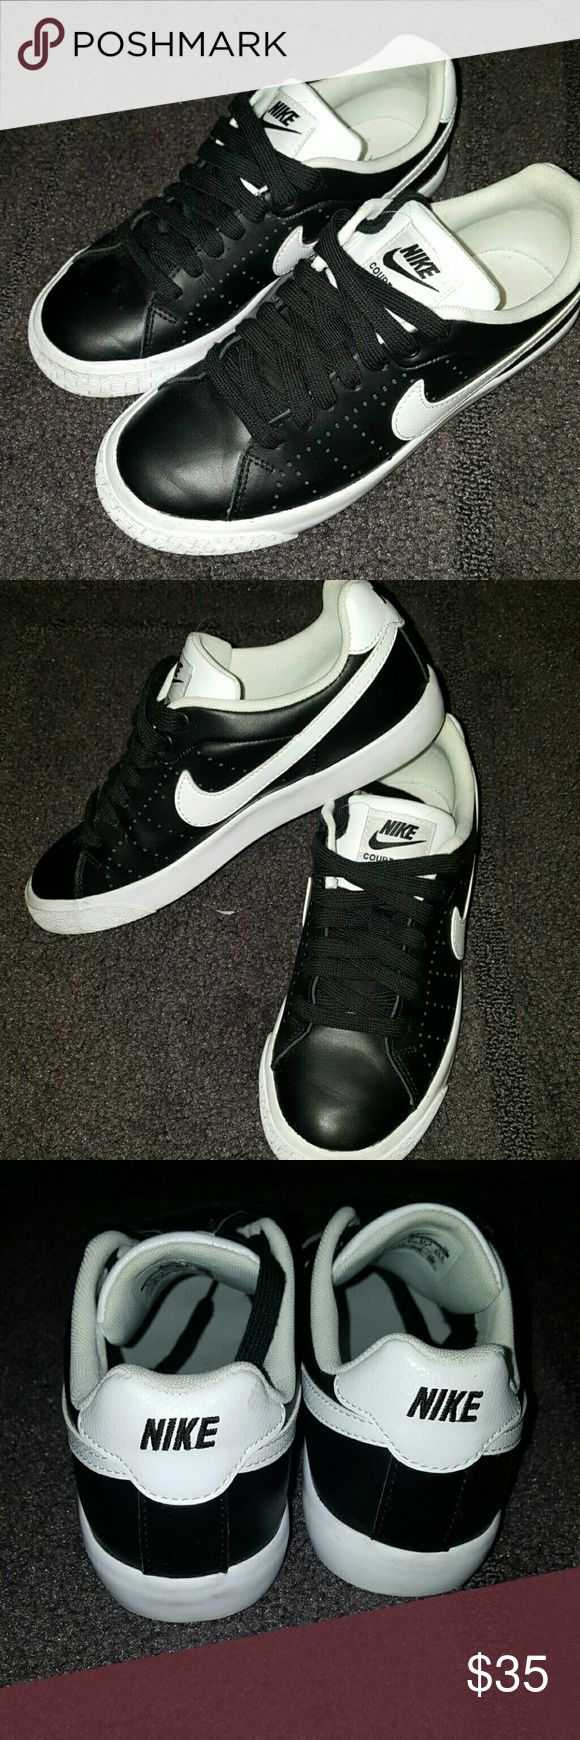 Like New Nike Court shoes Hardly ever worn black and white leather Nike Court Tour shoes Nike Shoes Sneakers